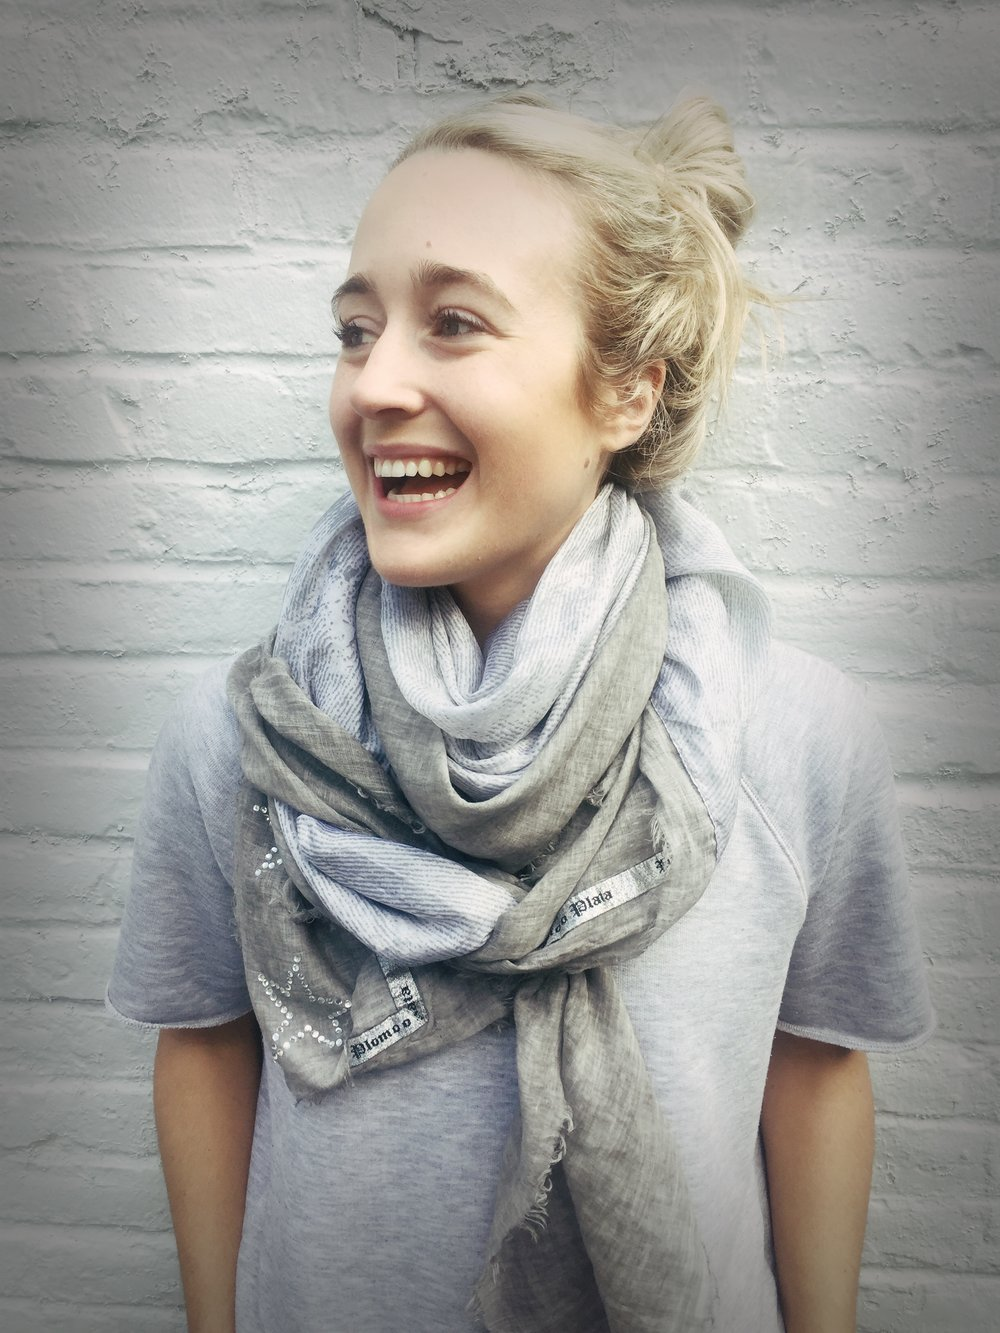 All smiles Kayla!! Showing off our Plomo o Plata scarf and ZK sweatshirt